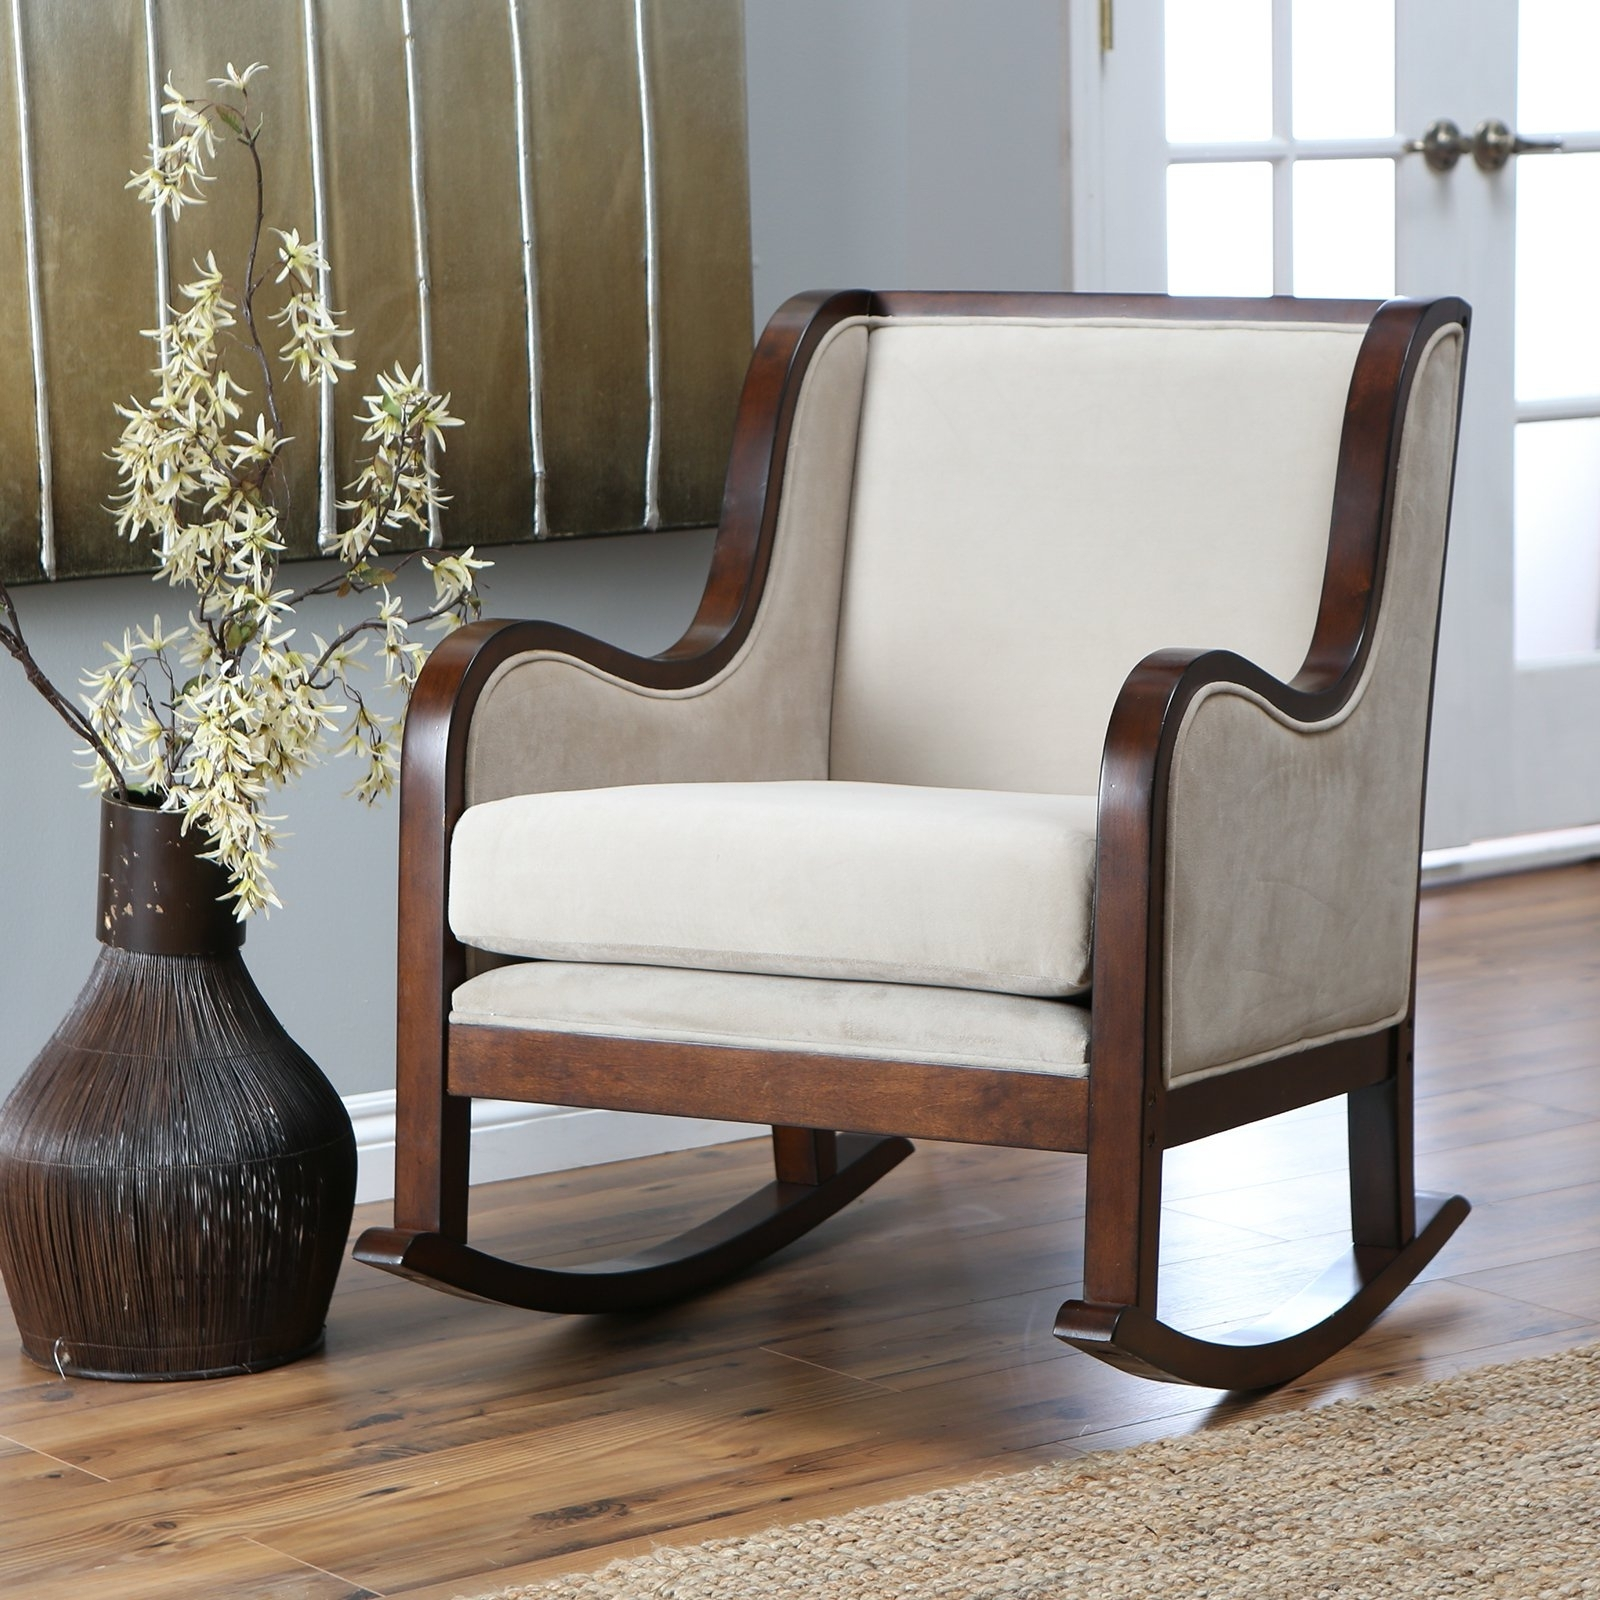 2017 Rocking Chairs For Small Spaces Throughout Grey Glider Recliner For Nursery – Kevinjohnsonformayor (View 1 of 15)